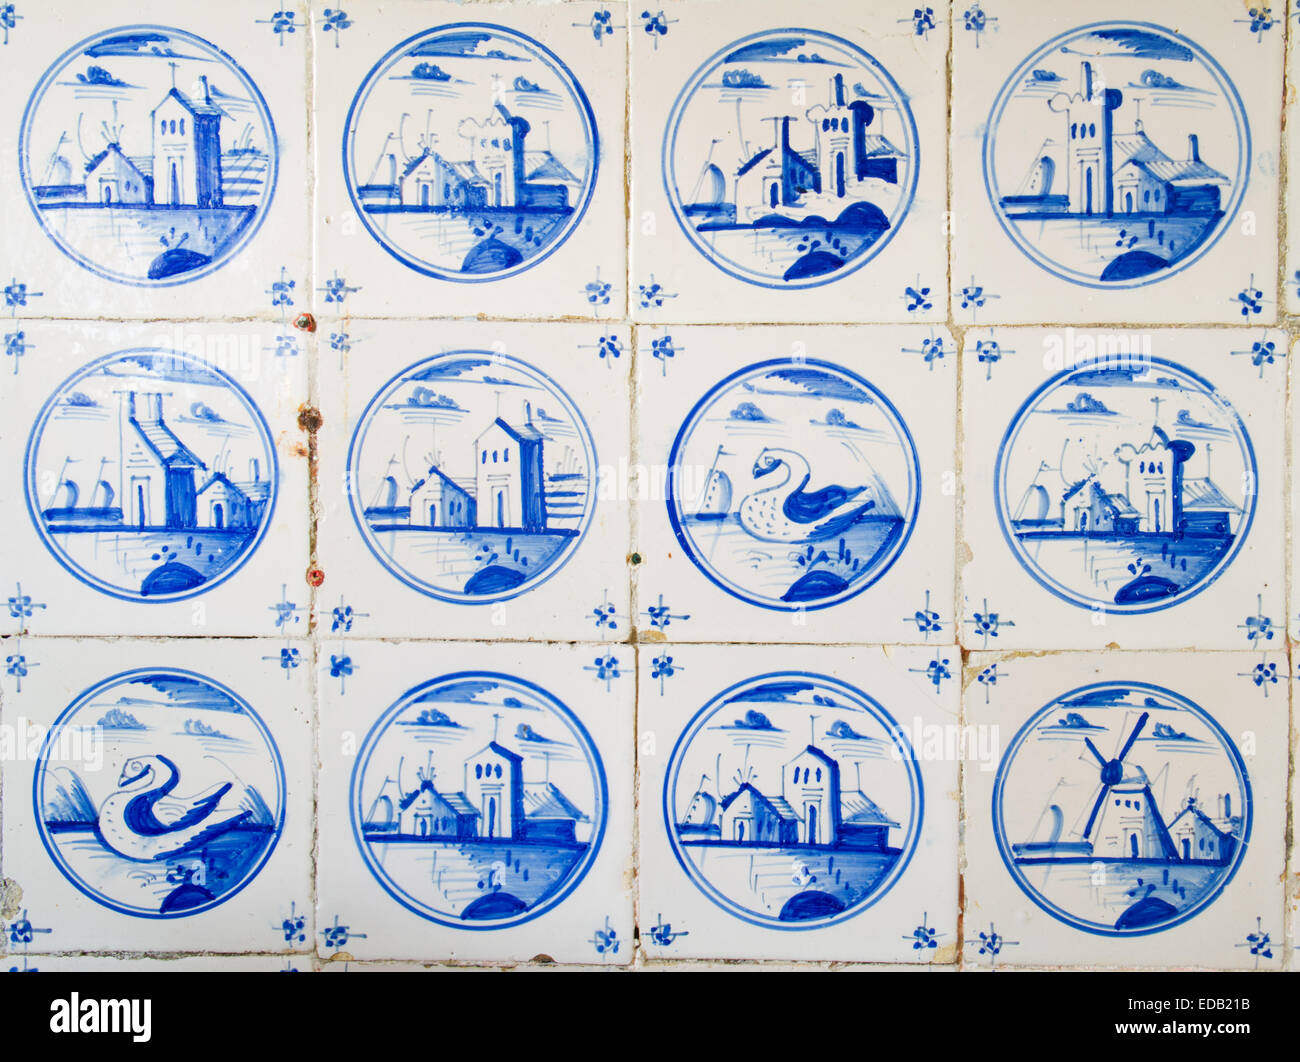 Antique dutch tiles on the kitchen wall of an old building - Stock Image